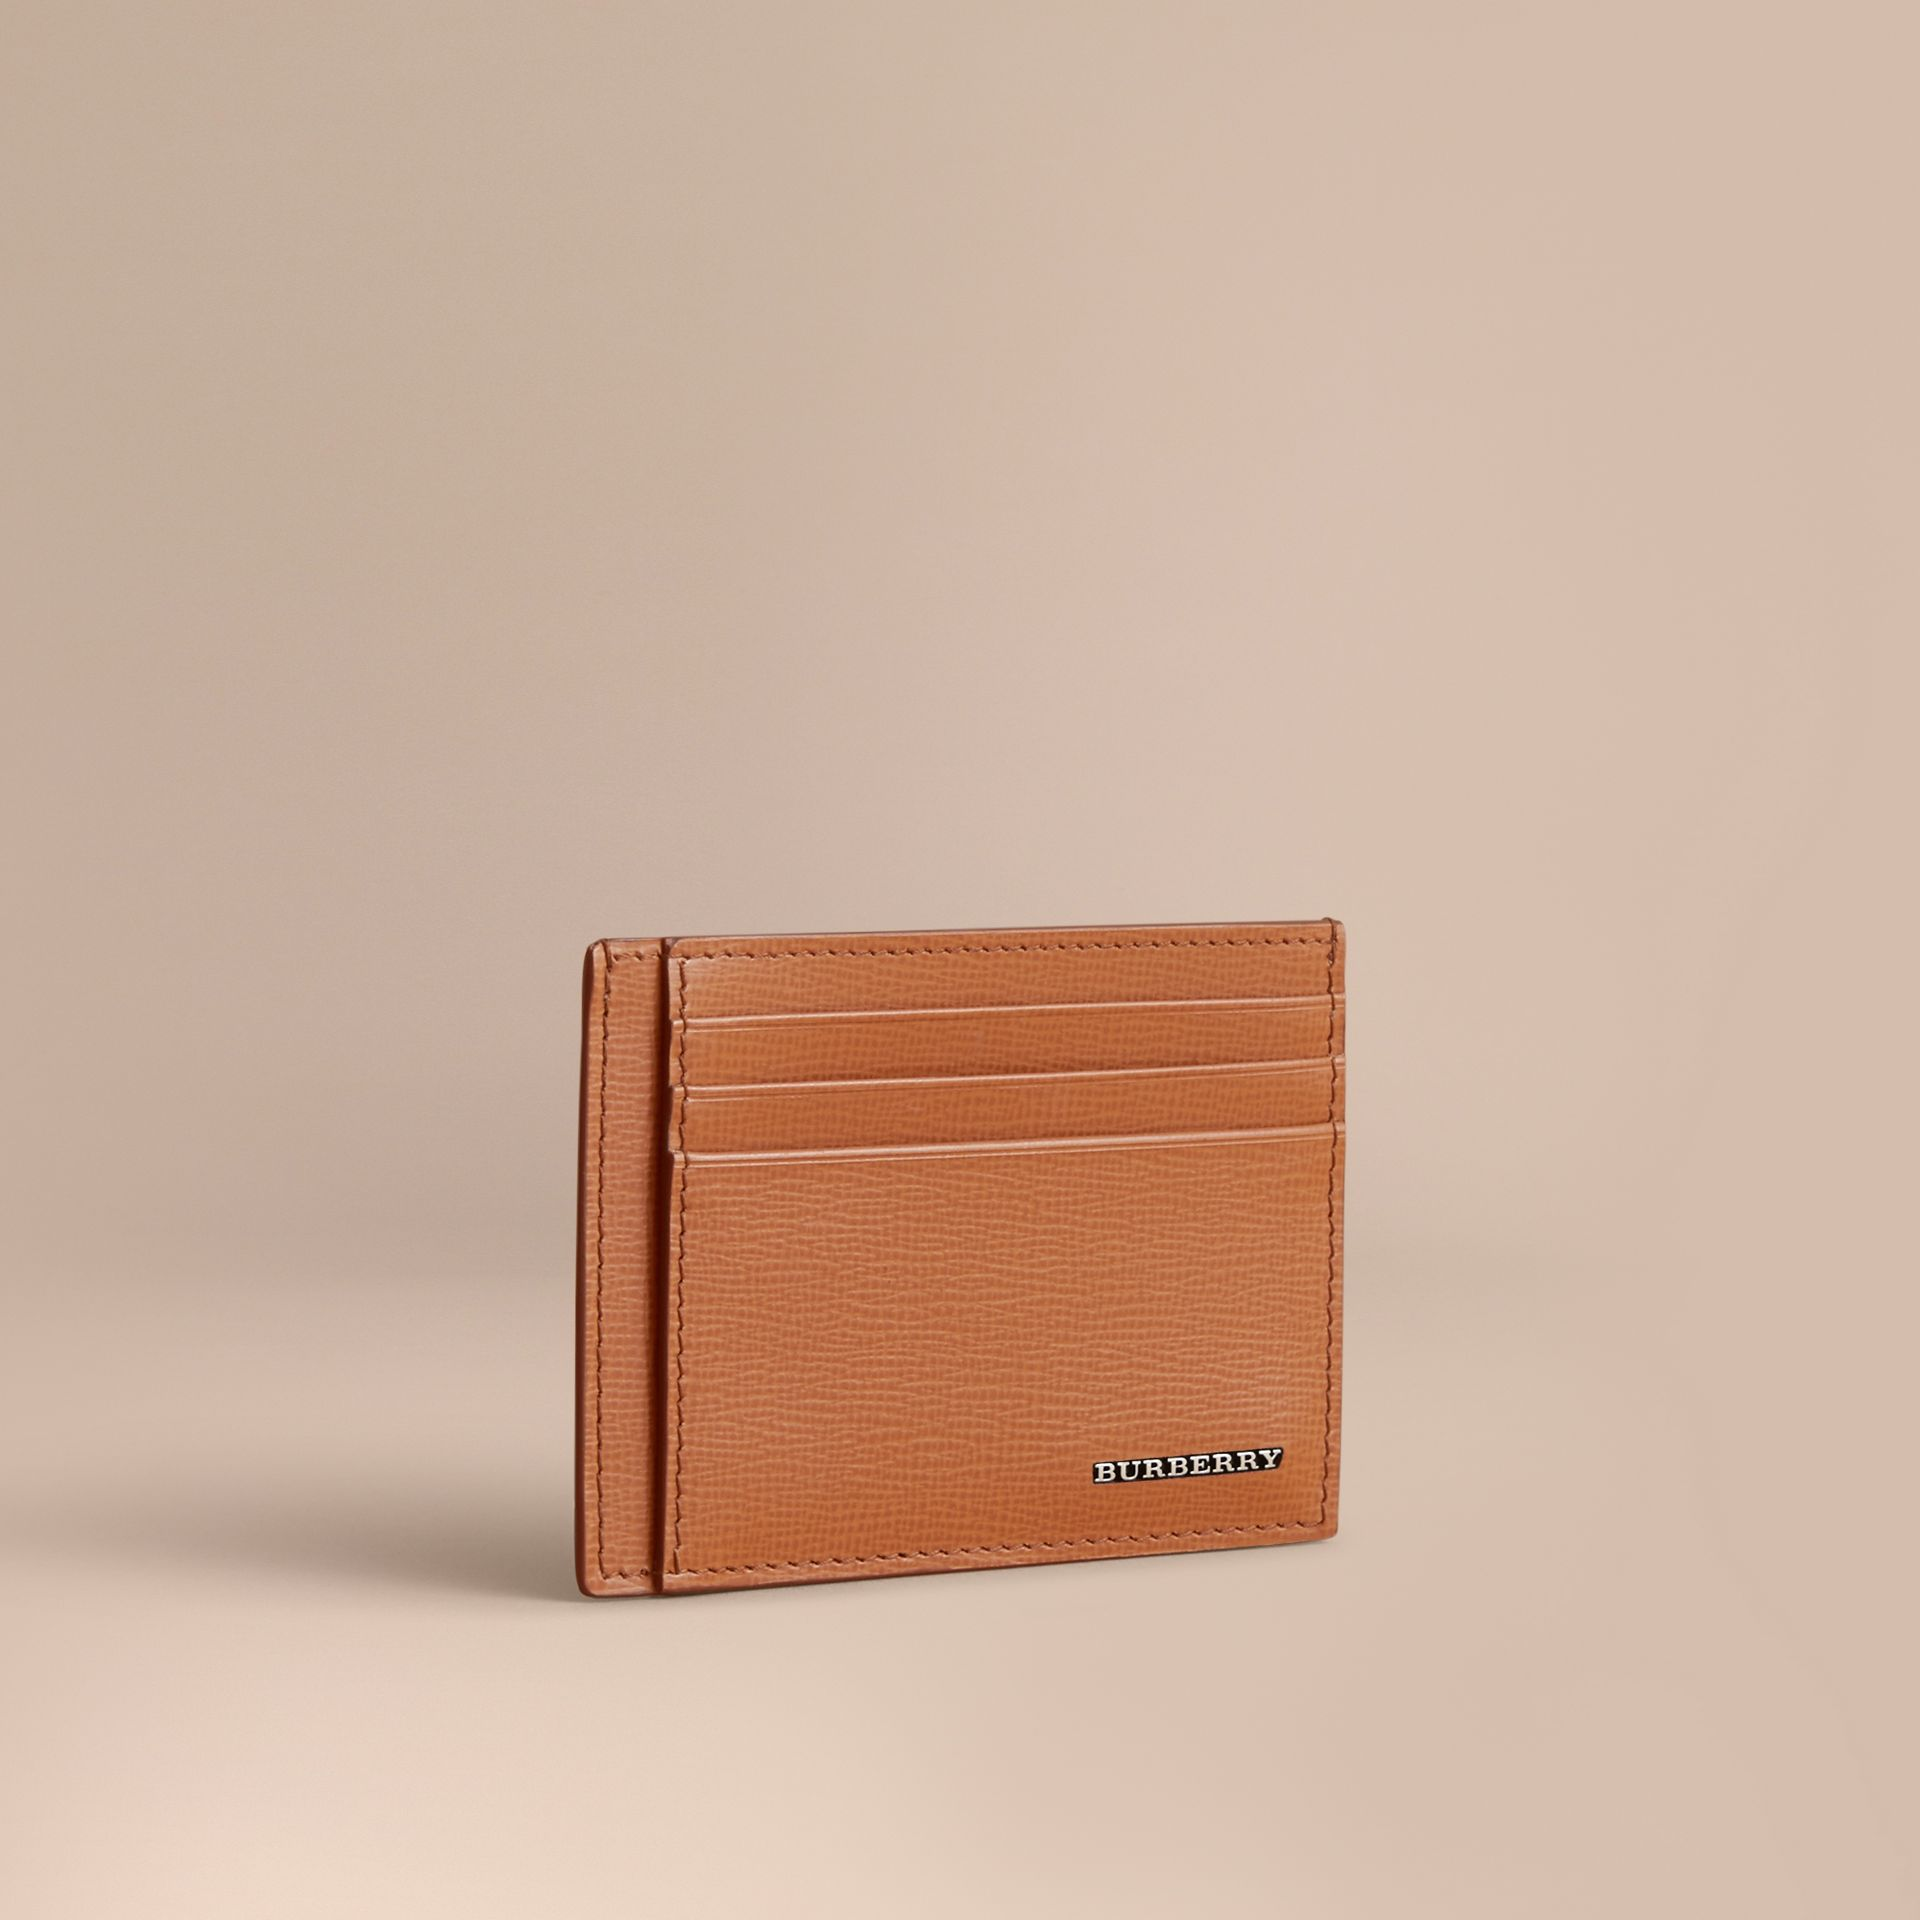 London Leather Card Case in Tan | Burberry - gallery image 1